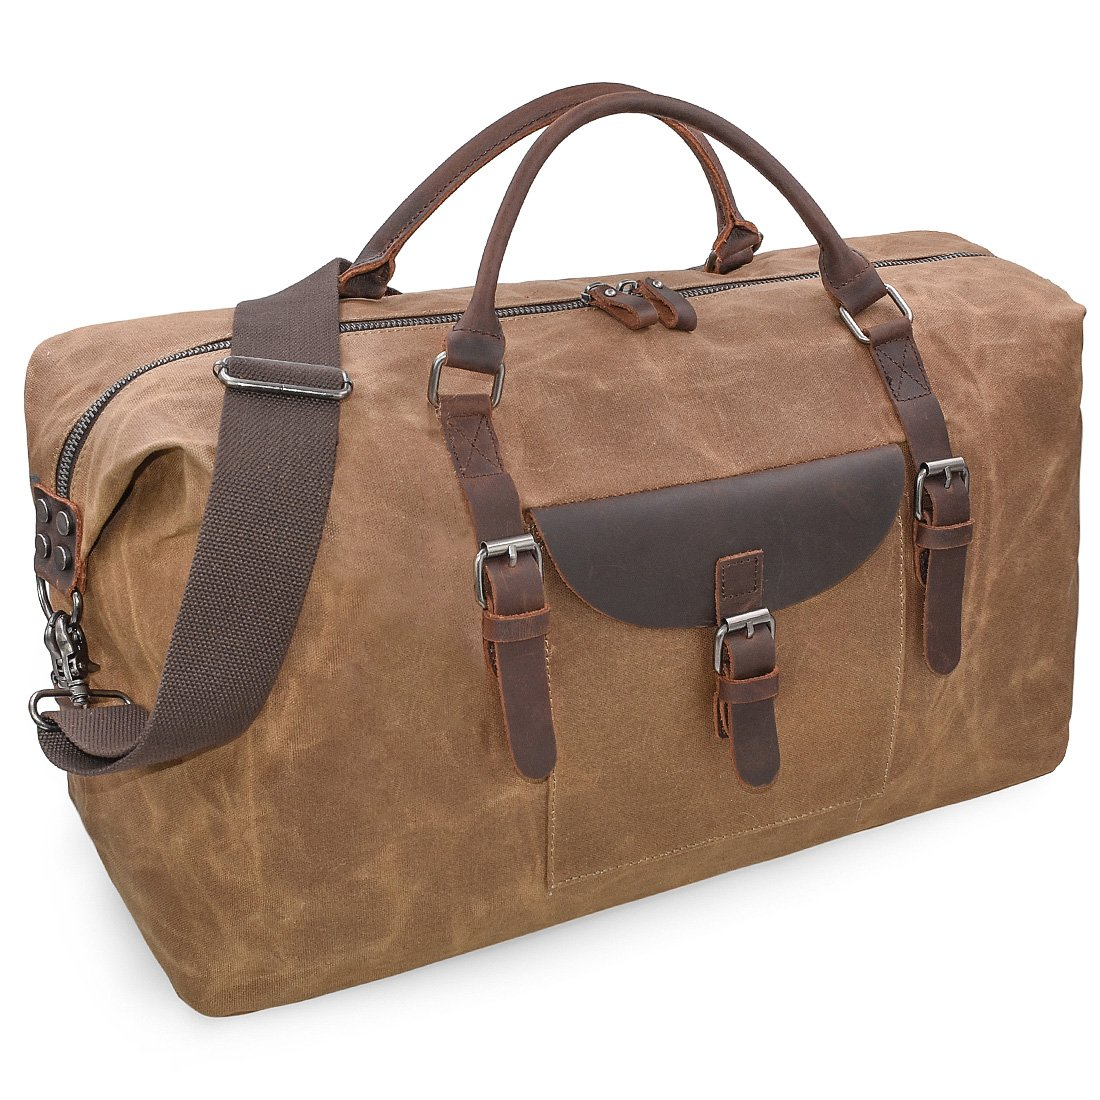 01dbfbb1e821 Mens Travel Holdall Duffle Bag Leather Weekend Overnight Bag Waterproof  Large Canvas Holdall Vintage Totes Women Brown  Amazon.co.uk  Luggage